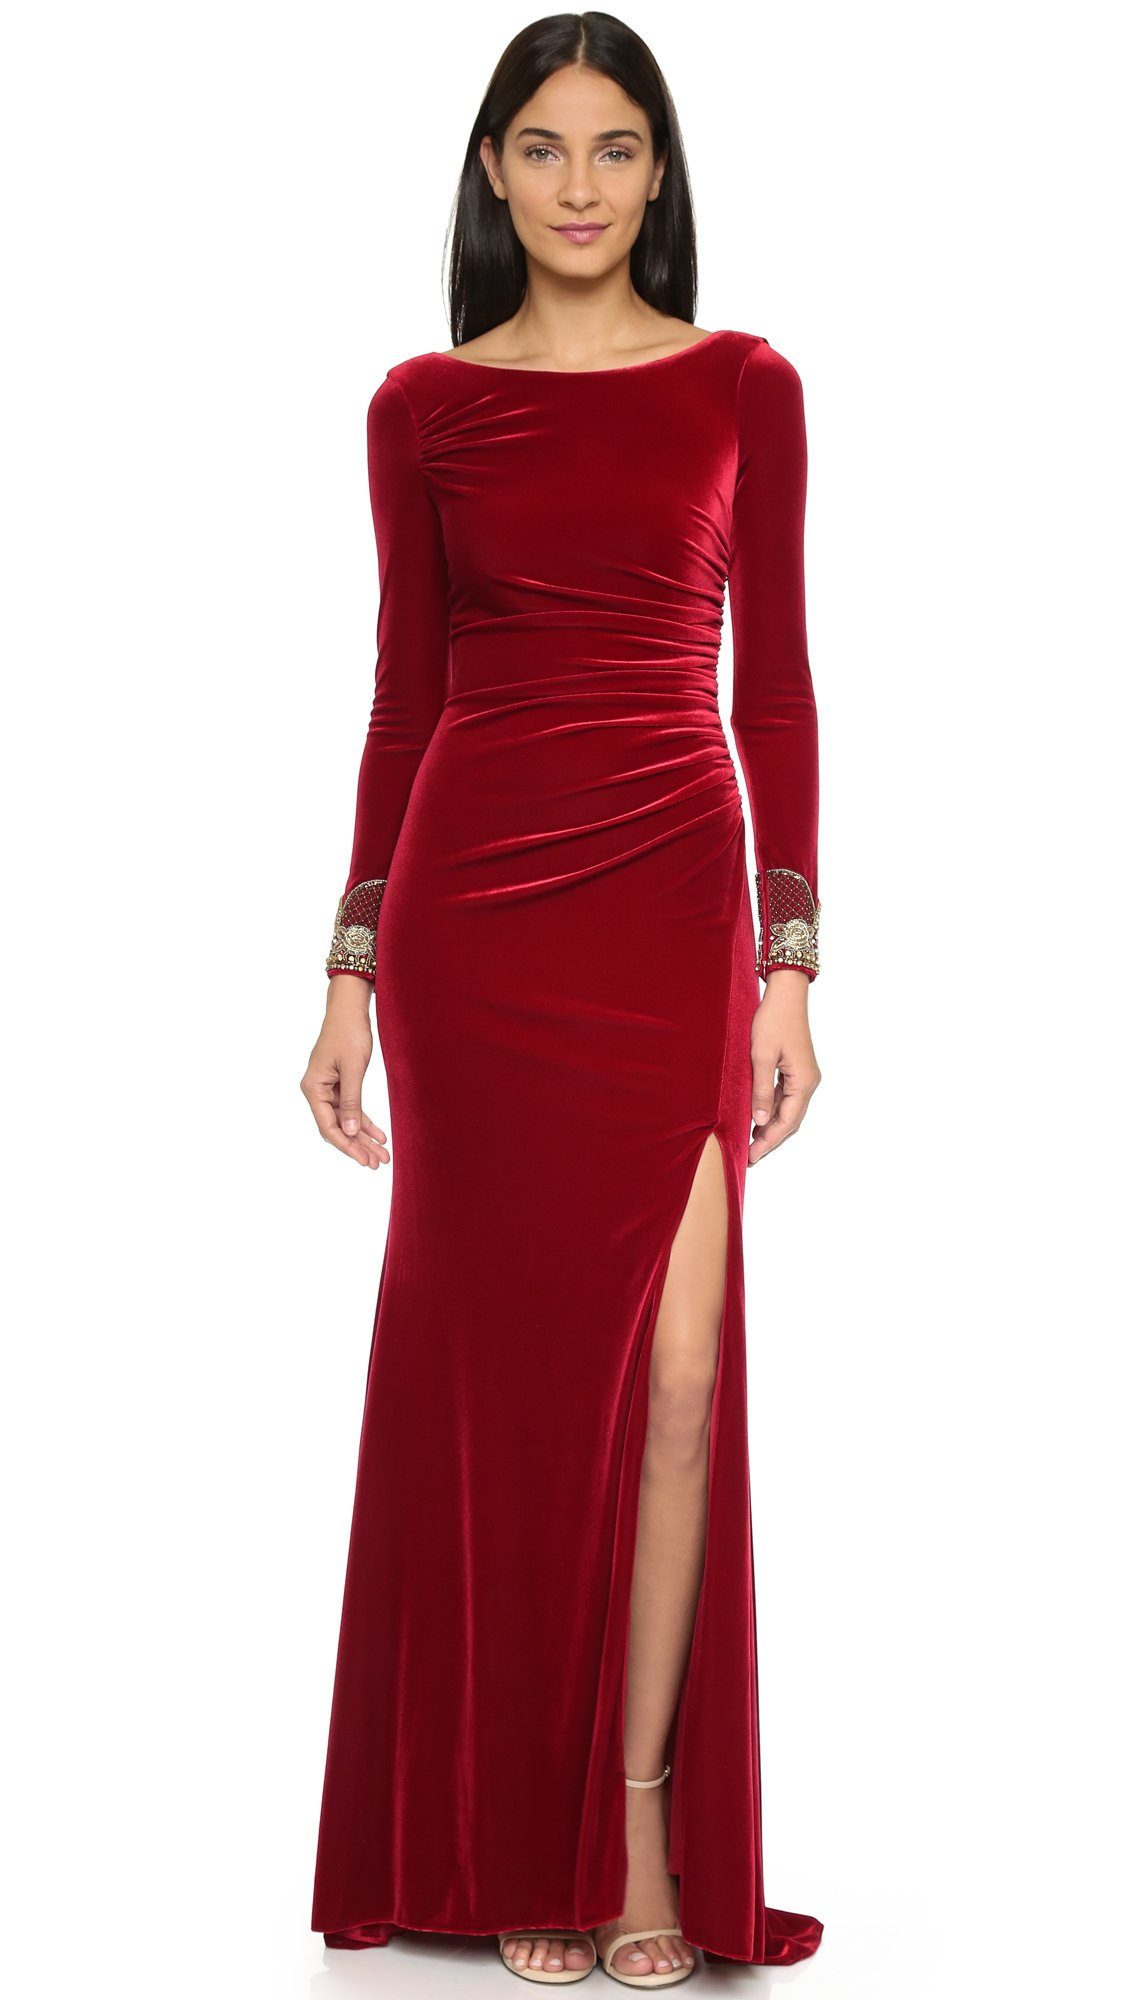 Badgley mischka Velvet Long Sleeve Dress - Crimson in Red - Lyst